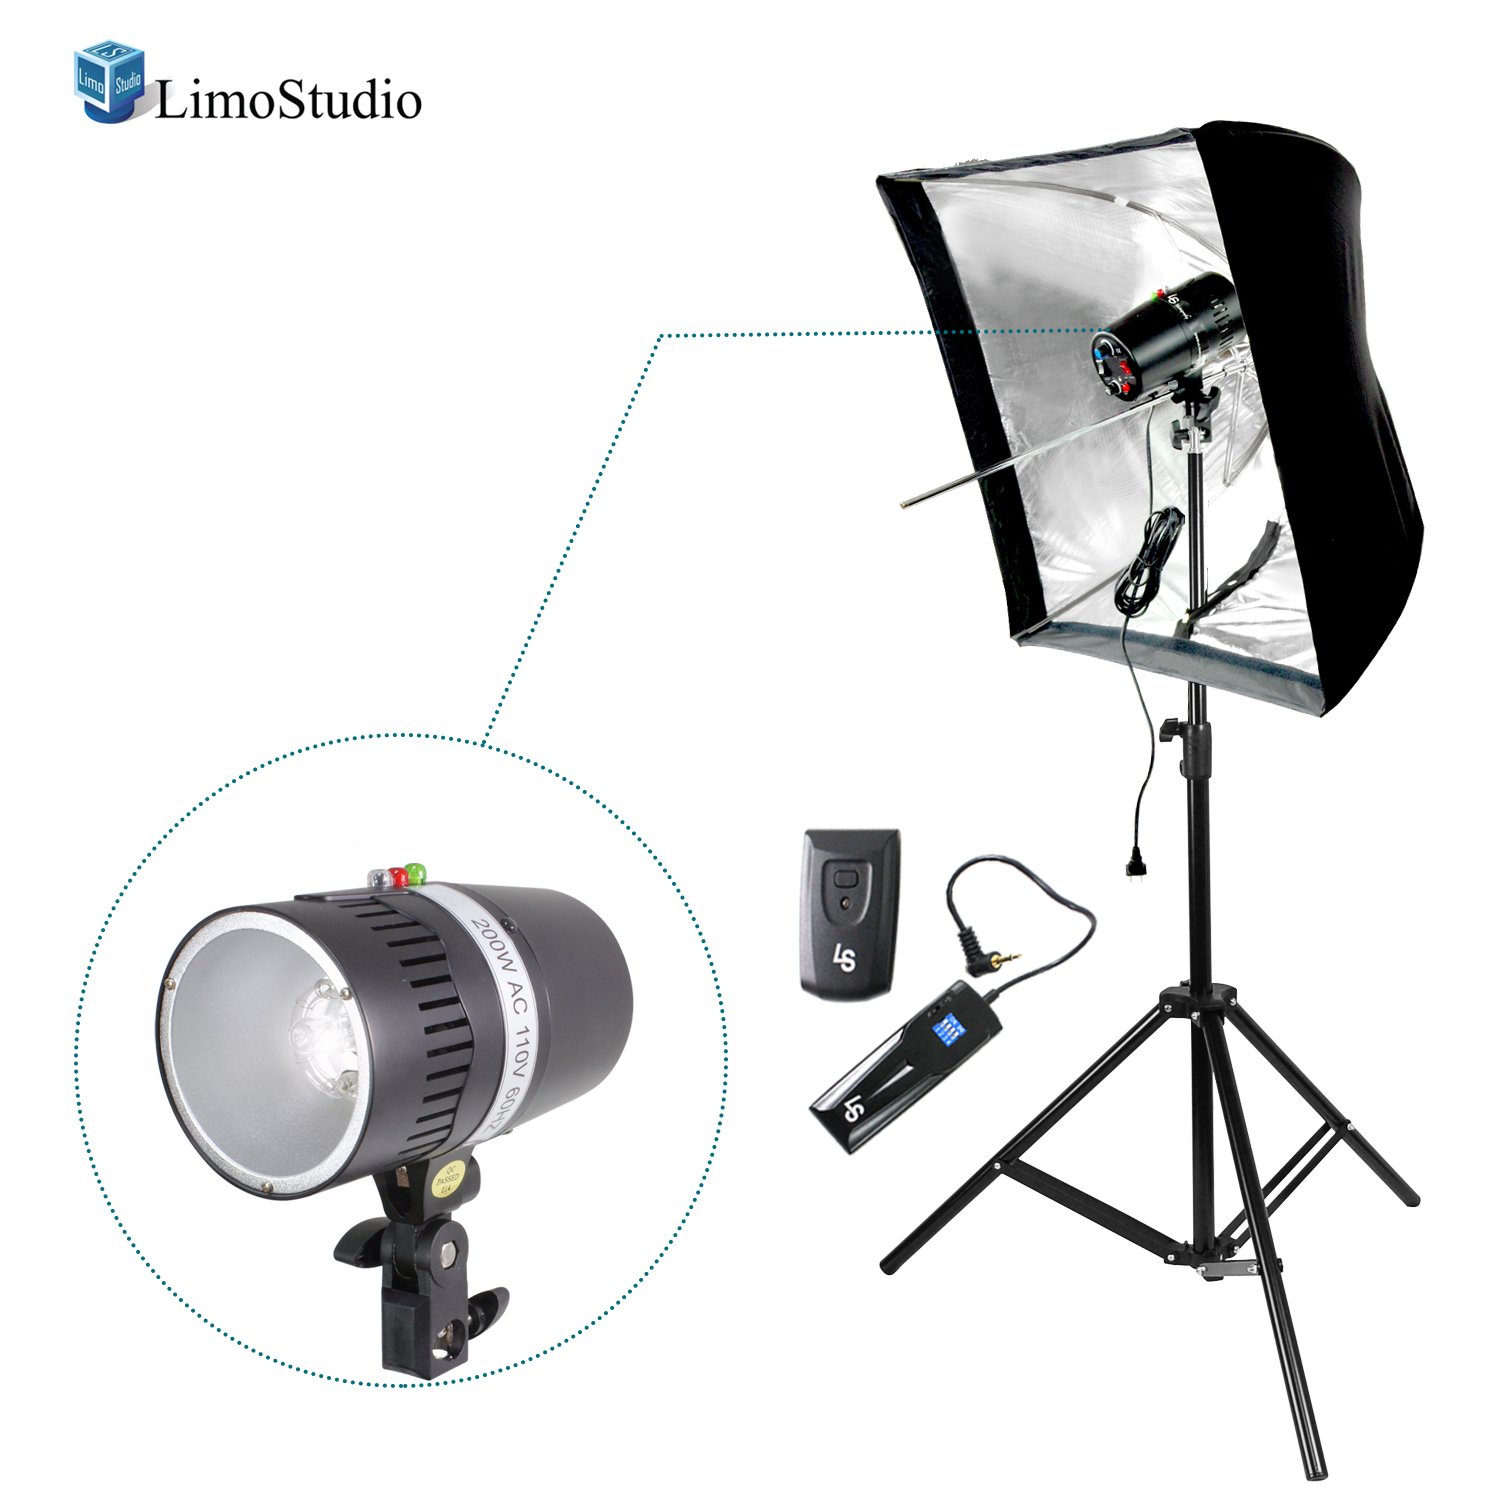 """LimoStudio Digital Strobe Flash Light & Umbrella Reflector Holder with 4-Channel Radio Remote Trigger & Receiver Set, 28"""" Reflective Sofbox, and Light Stand Tripod for Photo and Video Studio, AGG2748"""